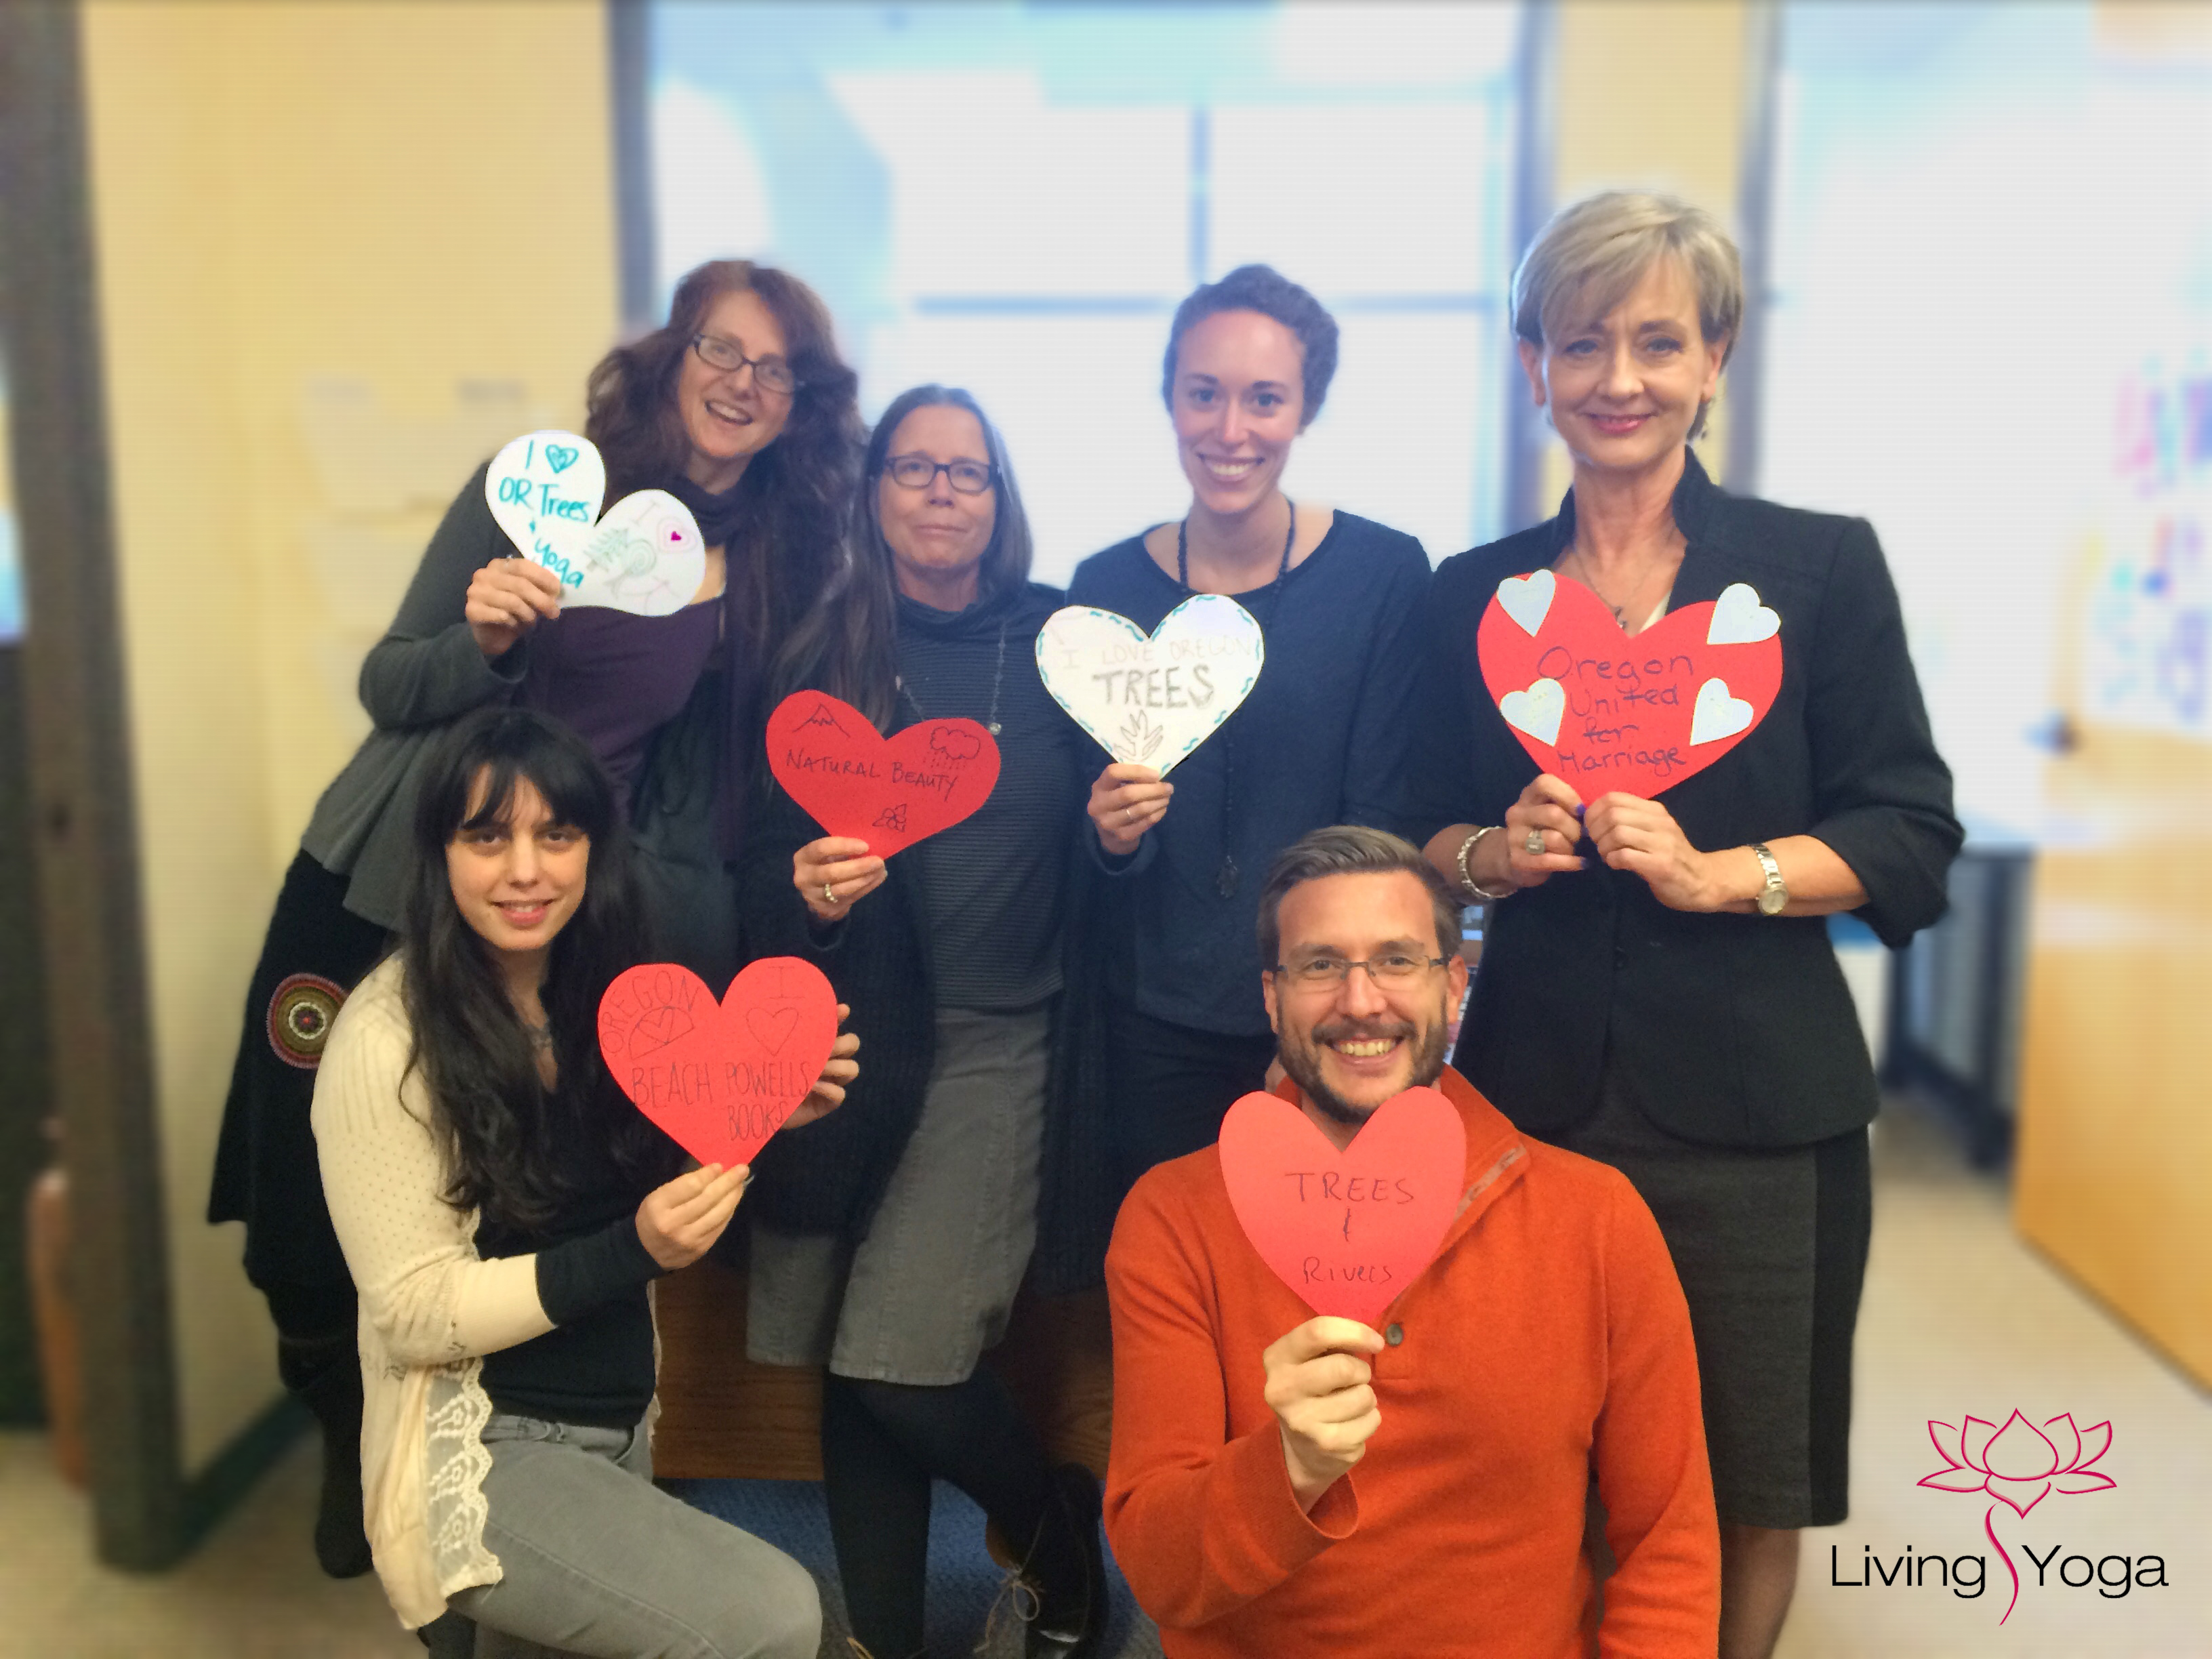 Living Yoga Interim Development Director Valentines Campaign February 2015 Fundraising on a Mission